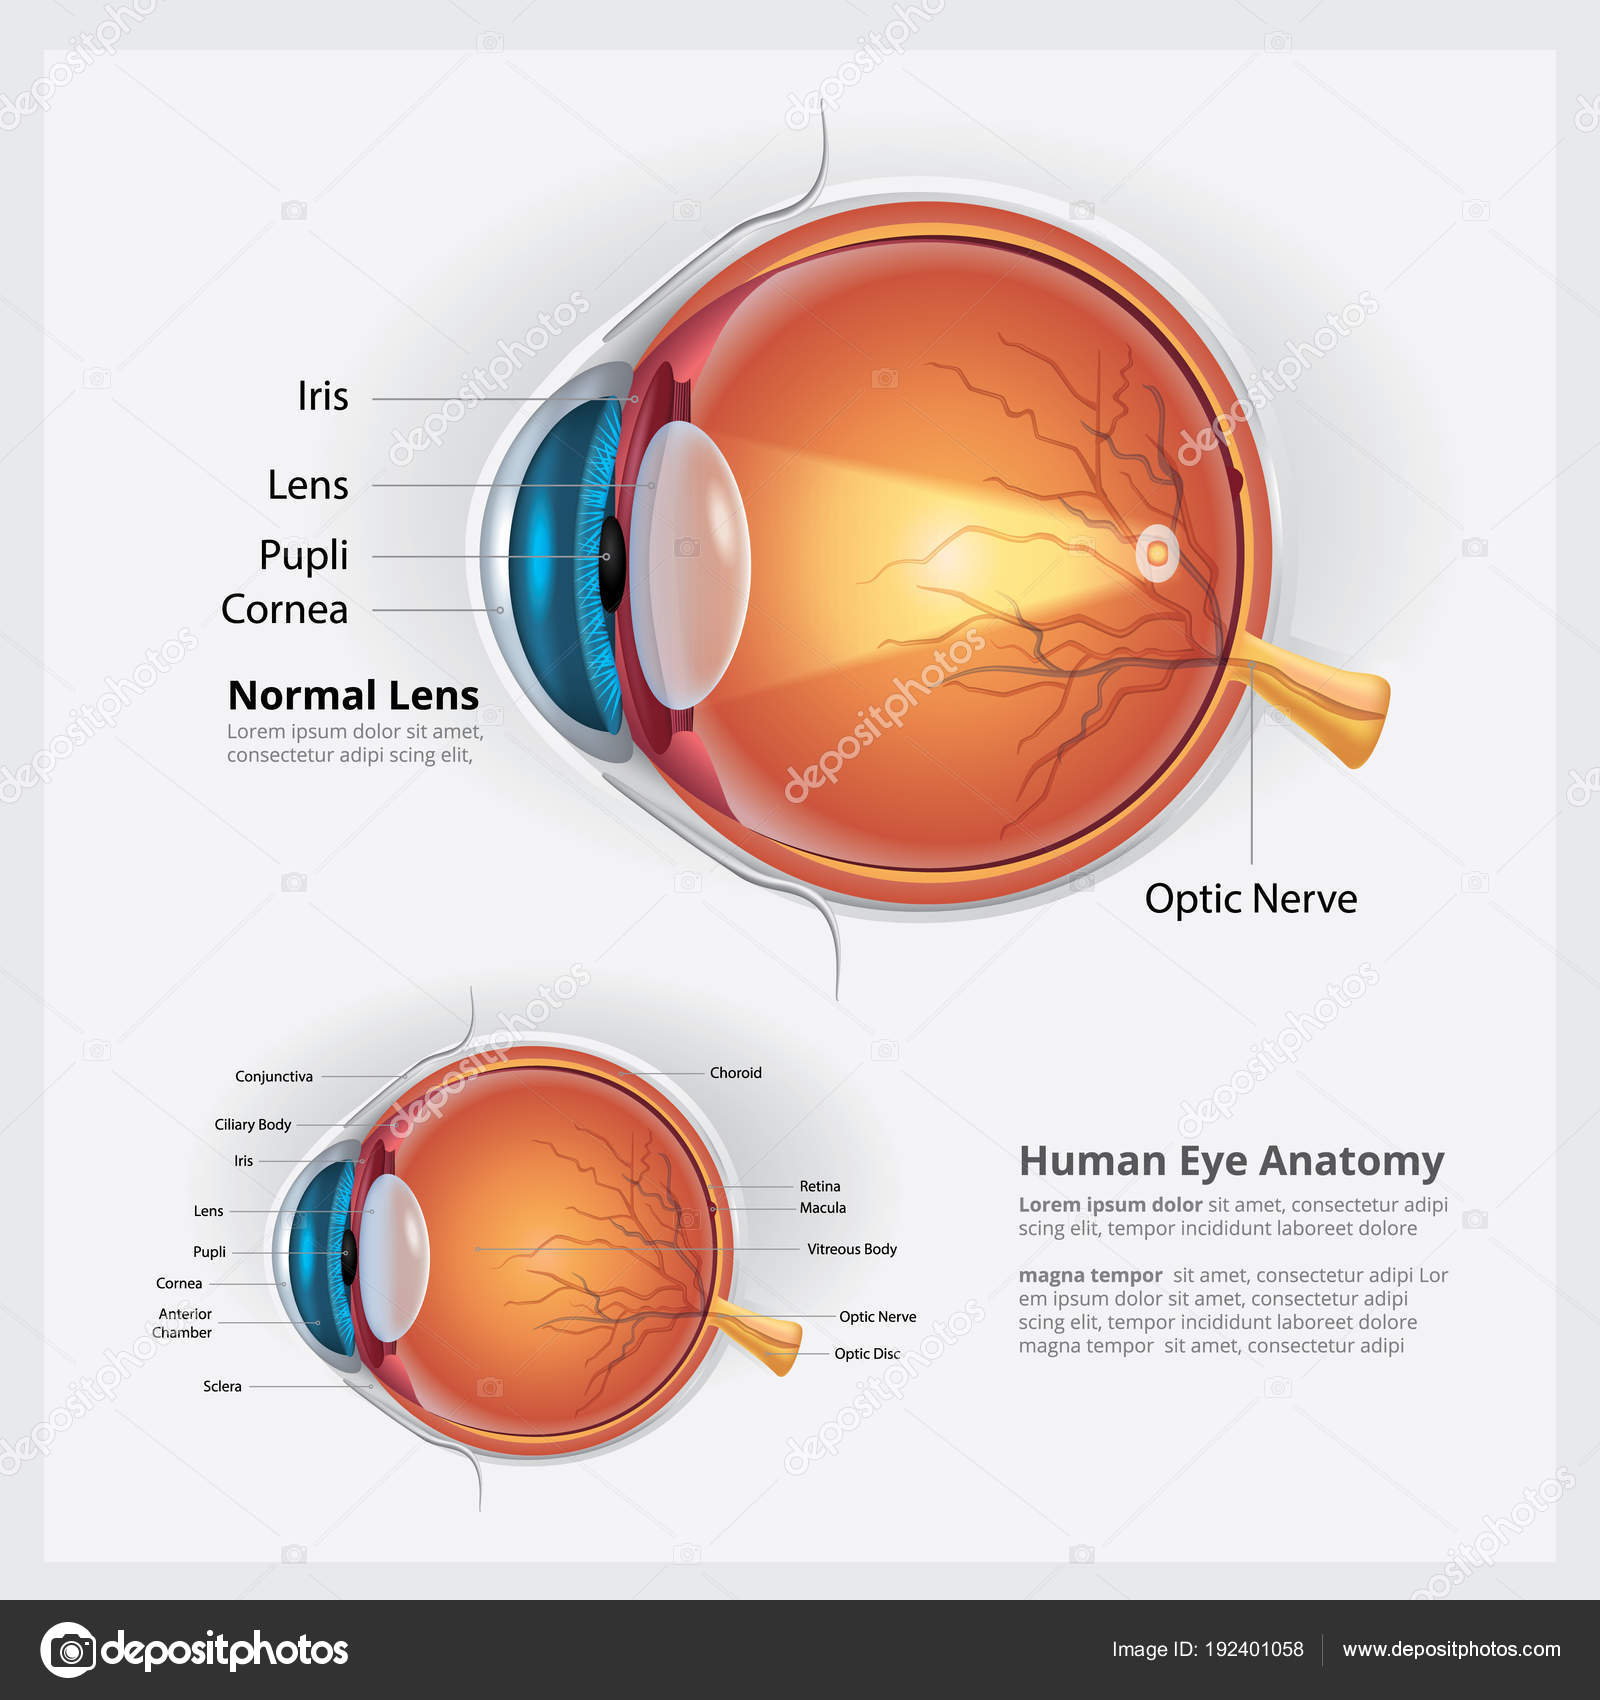 Human Eye Anatomy Normal Lens Vector Illustration — Stock Vector ...